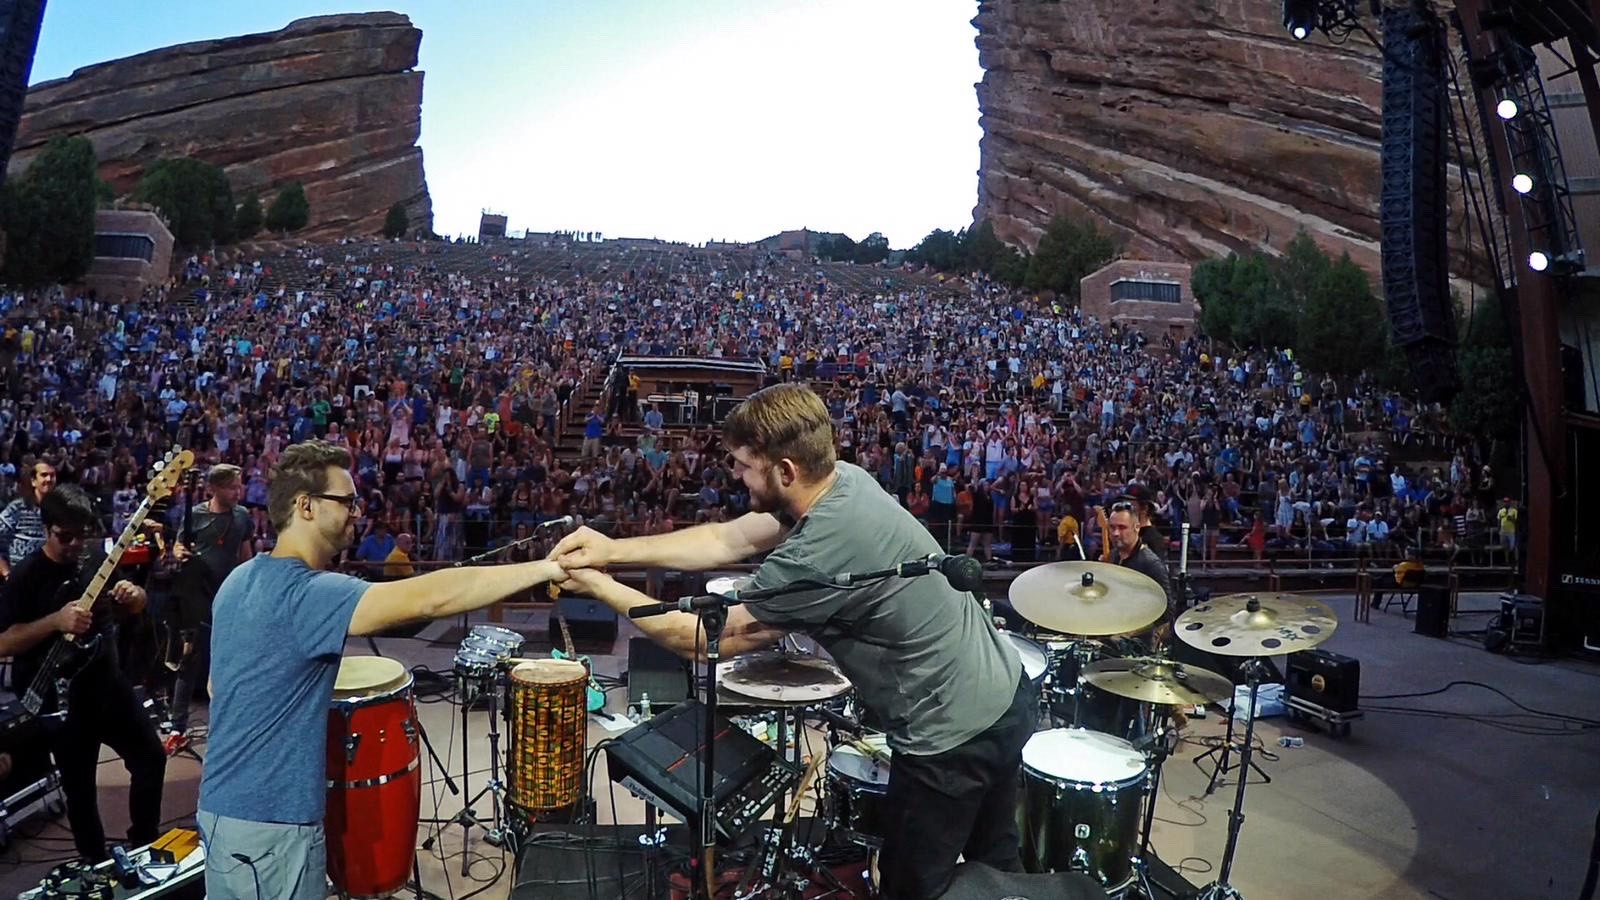 Hernly and Poynter shake hands over a drum set in front of a crowd of thousands at Red Rocks Amphitheater